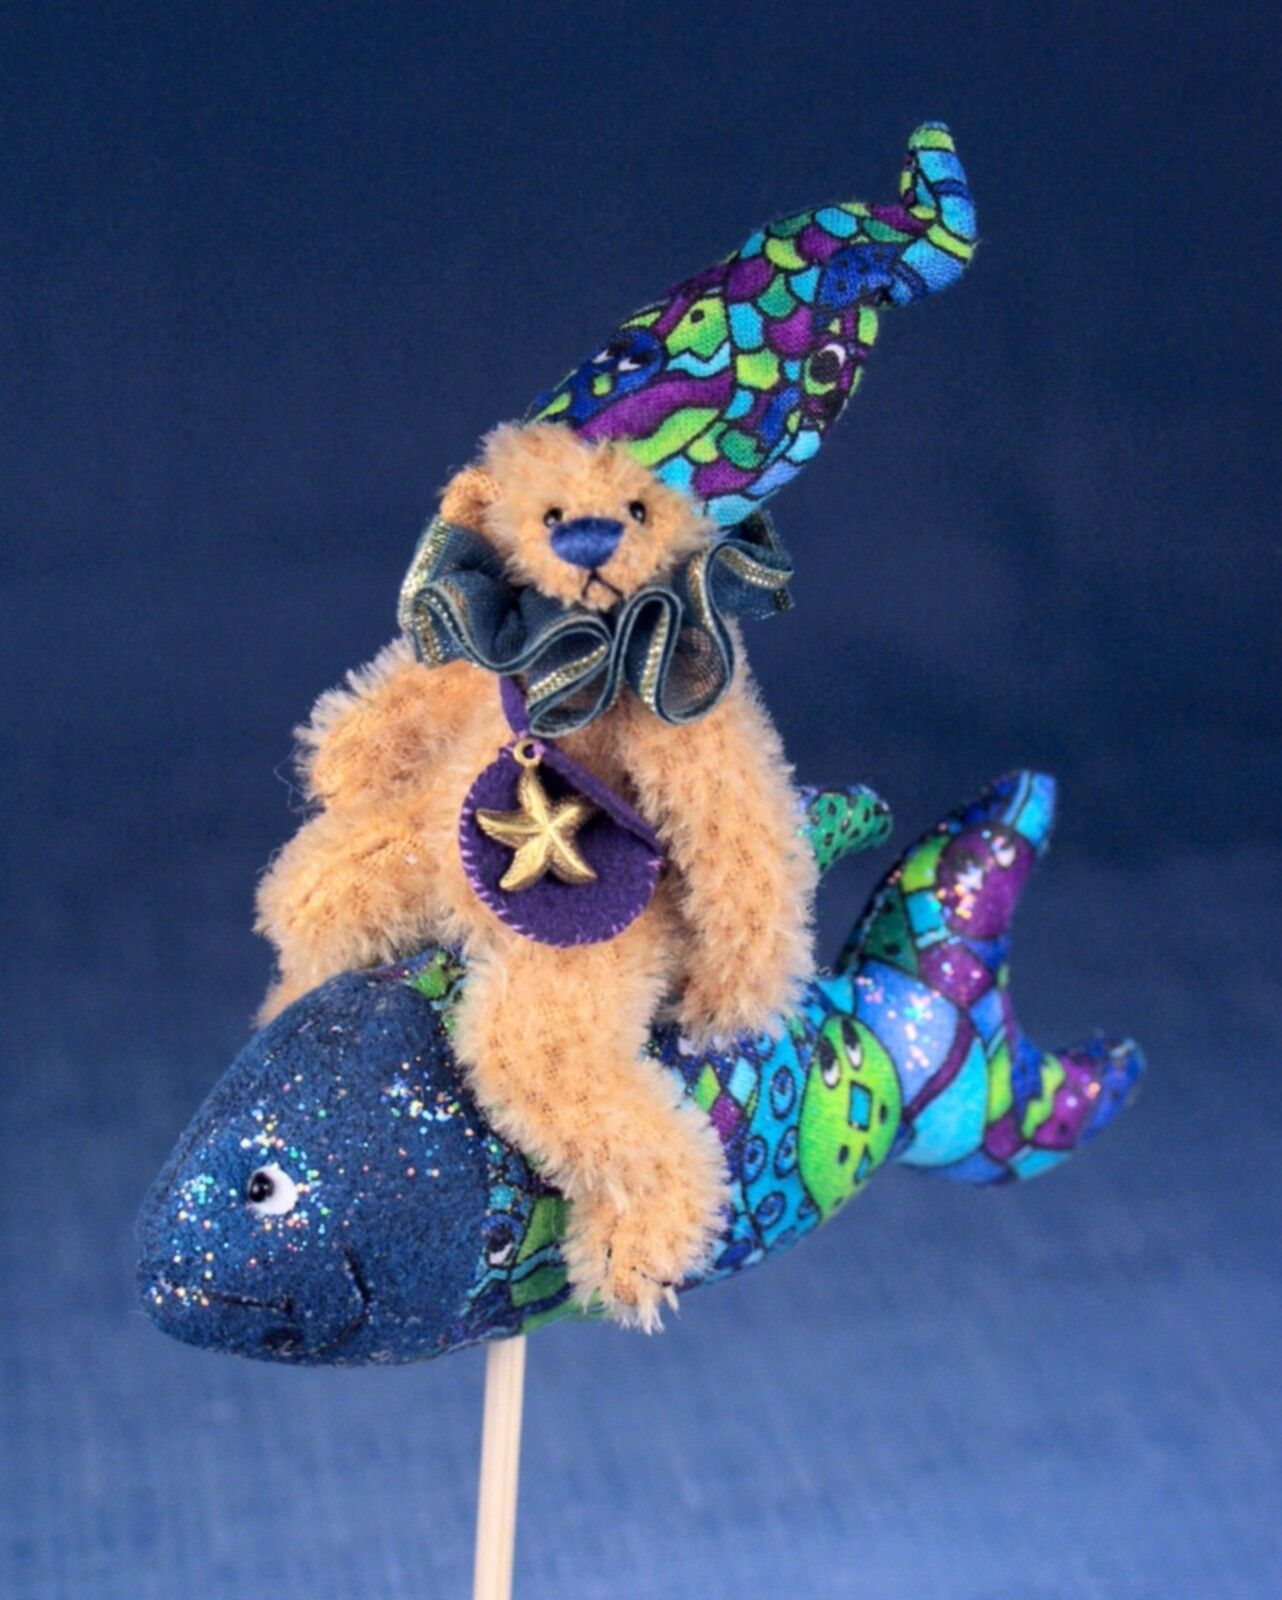 DEB CANHAM'S  1,2,3,4,5   3 3/4  BEAR RIDING A MULTICOLOrosso FISH-NURSERY RHYMES